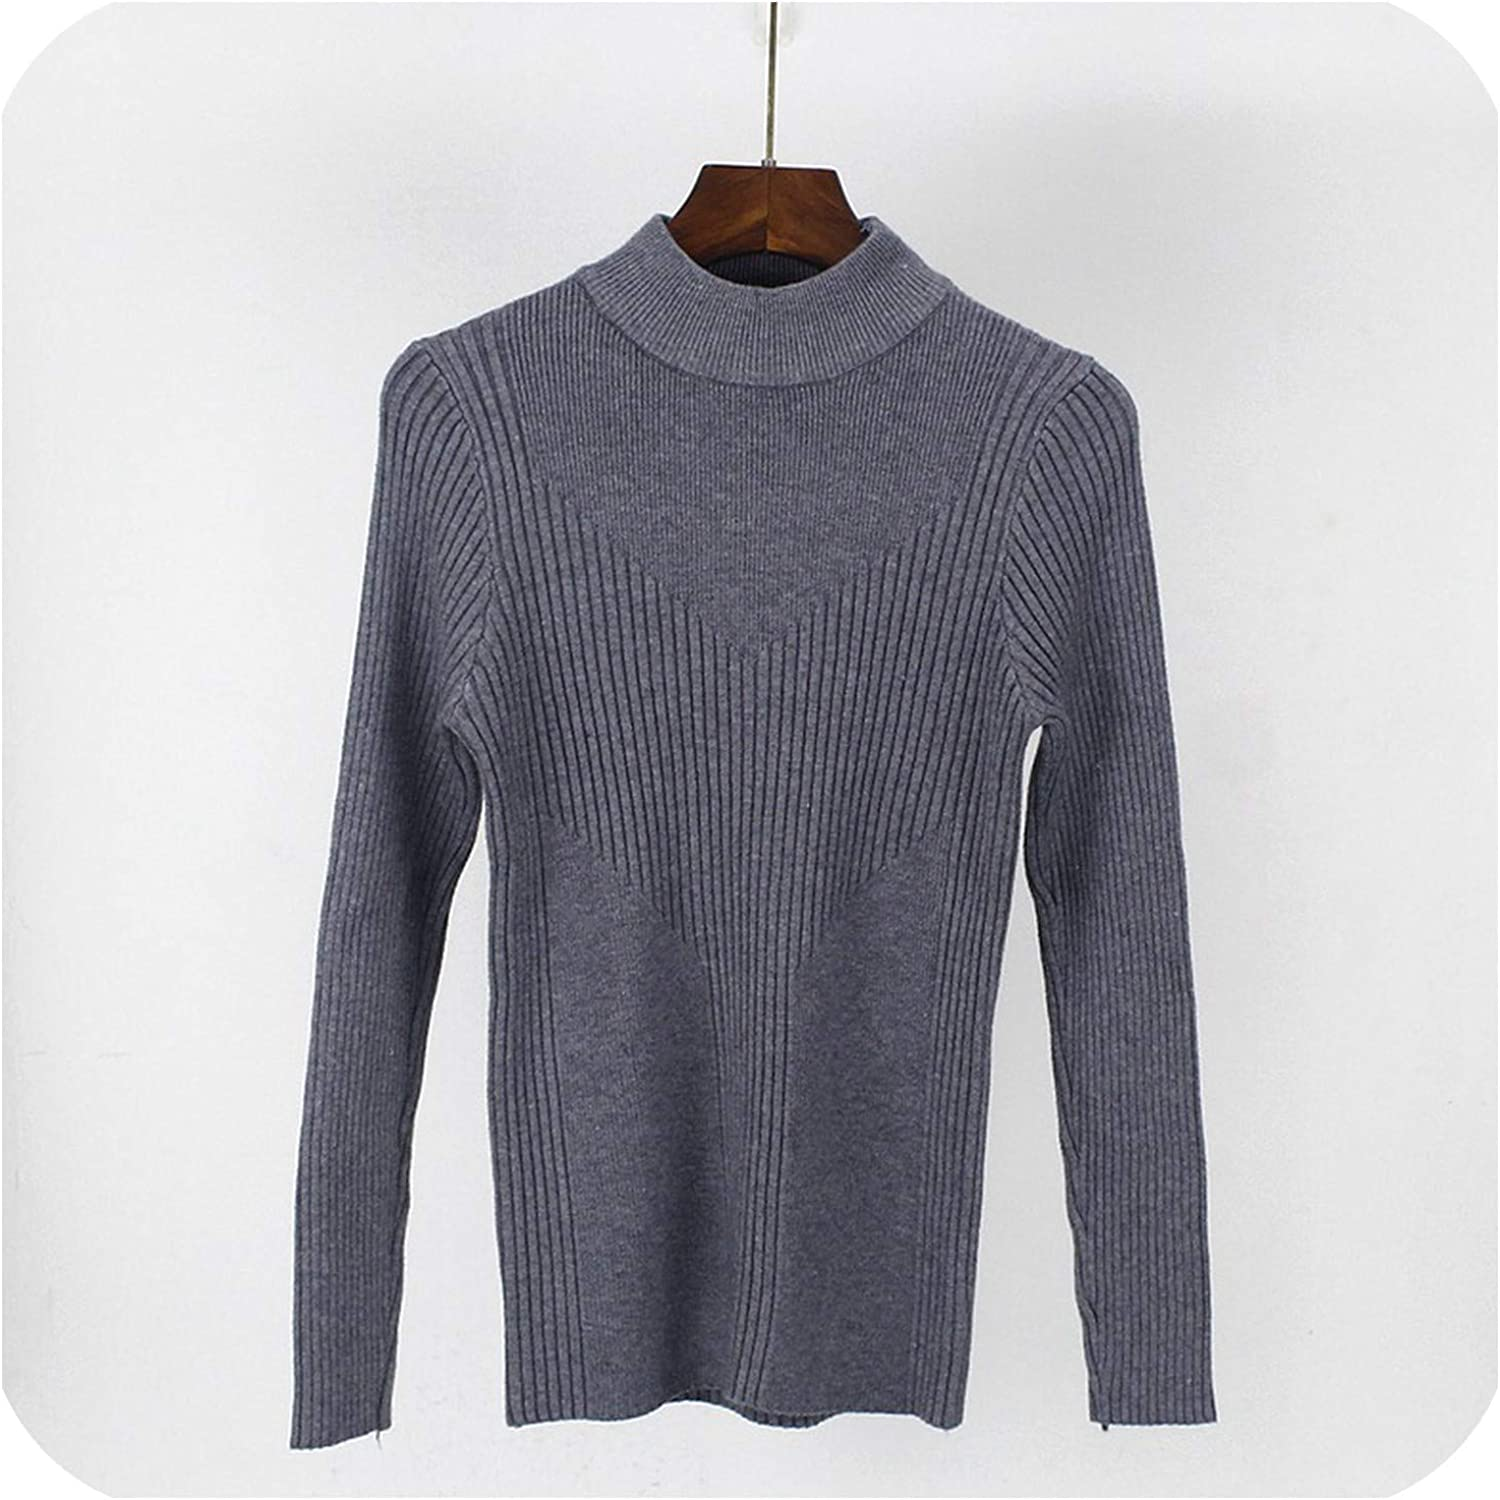 Thick Warm Women Autumn Winter Pullover Sweater High Elasticity Knitted Soft Jumper Long Sleeves Sweater Top